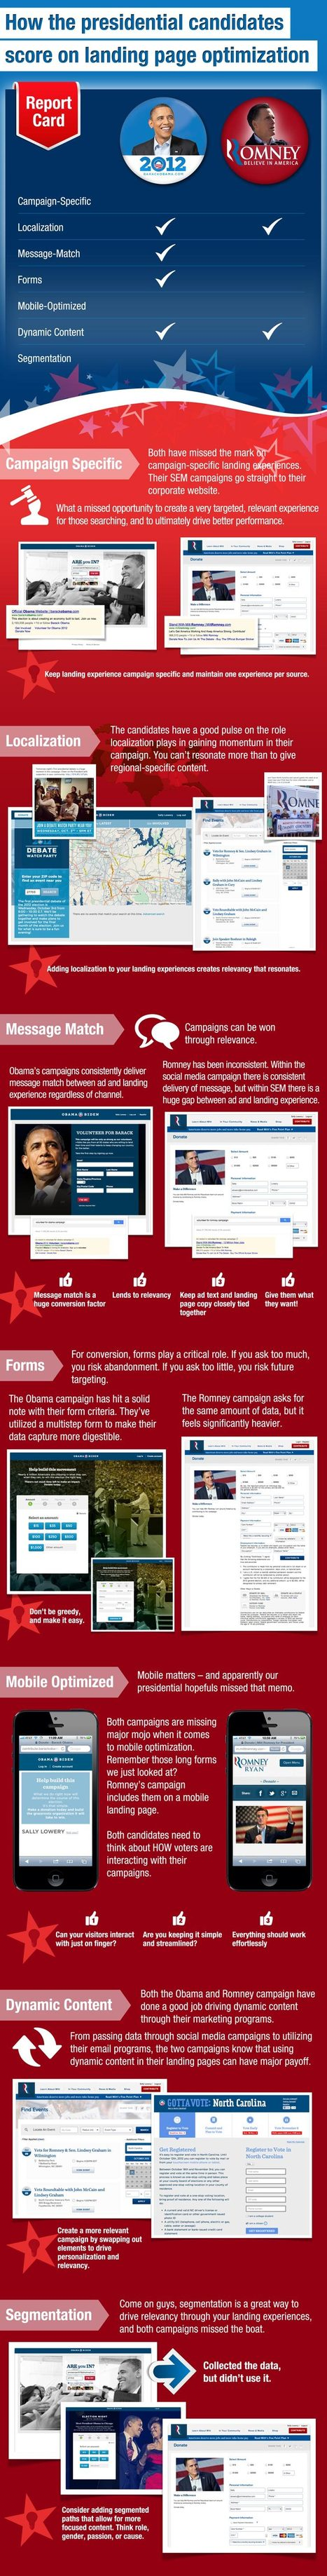 What We Can Learn About Landing Page Optimization from the Presidential Candidates   - ion interactive blog - The best landing pages start with ion's software and services. | Dorai on Tools for Information, Intelligence and Knowledge | Scoop.it